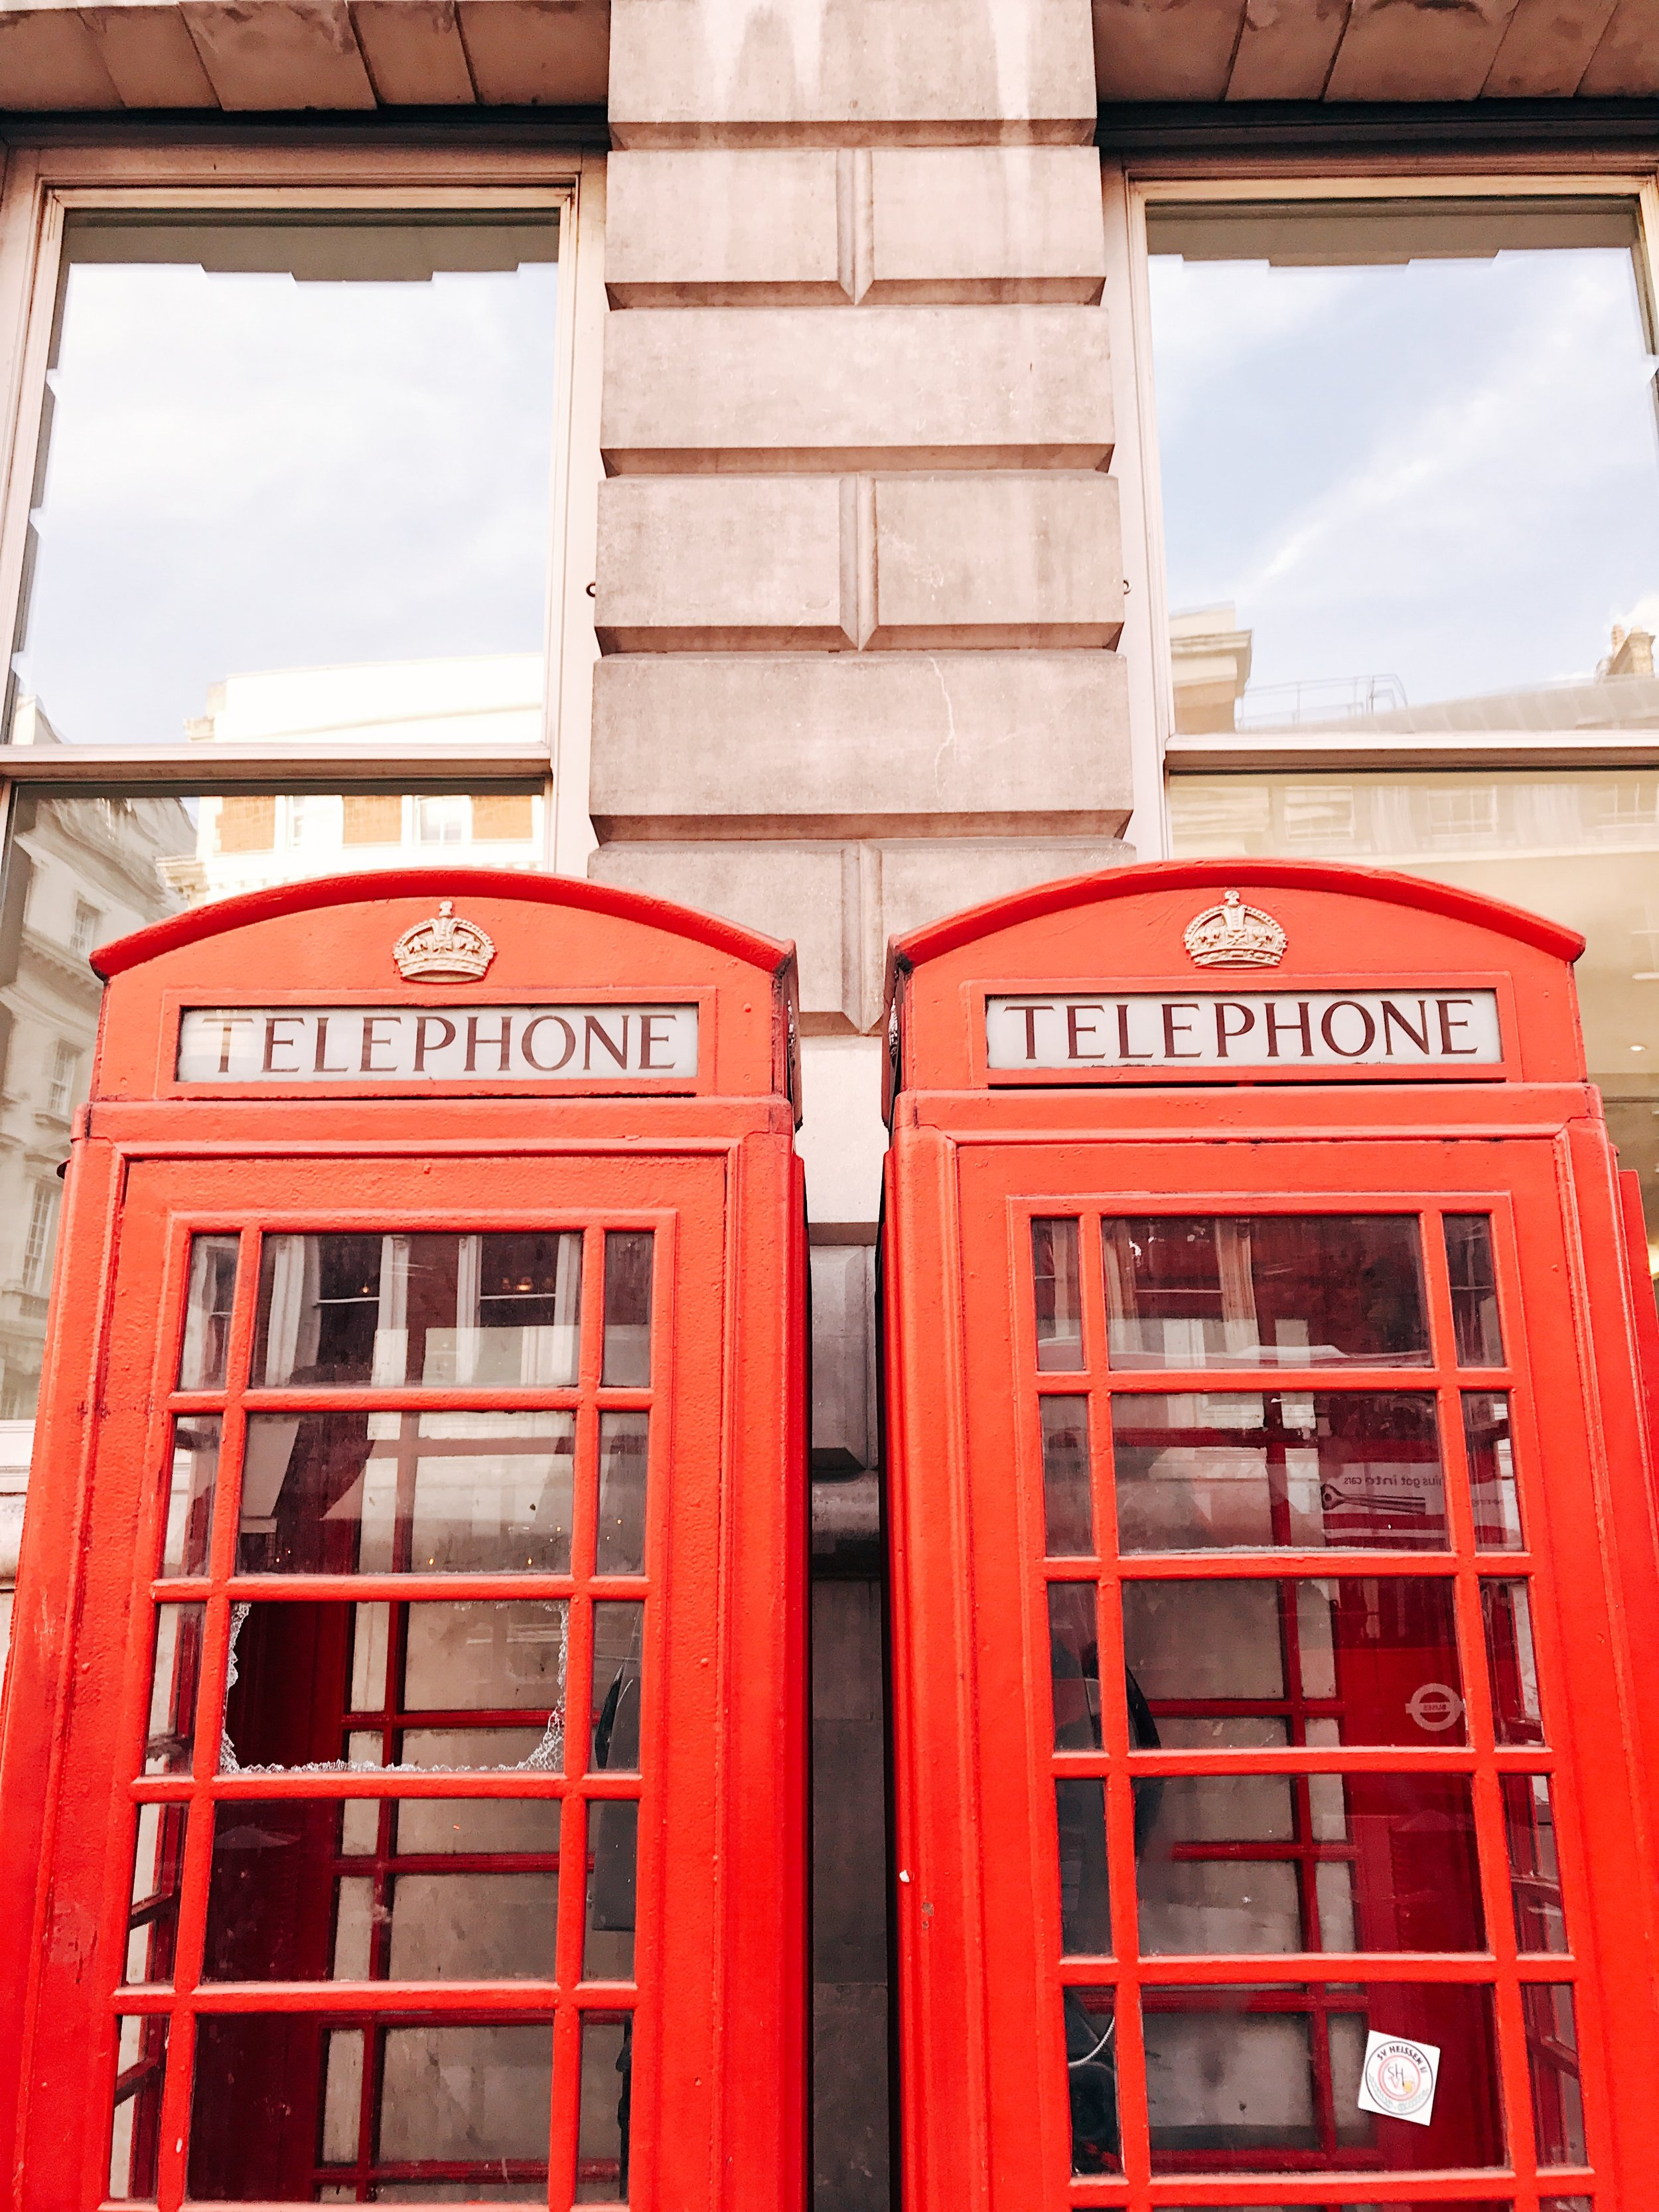 Image: Reasons to Visit London - Many Images to Inspire You to Visit London - Telephone Booth